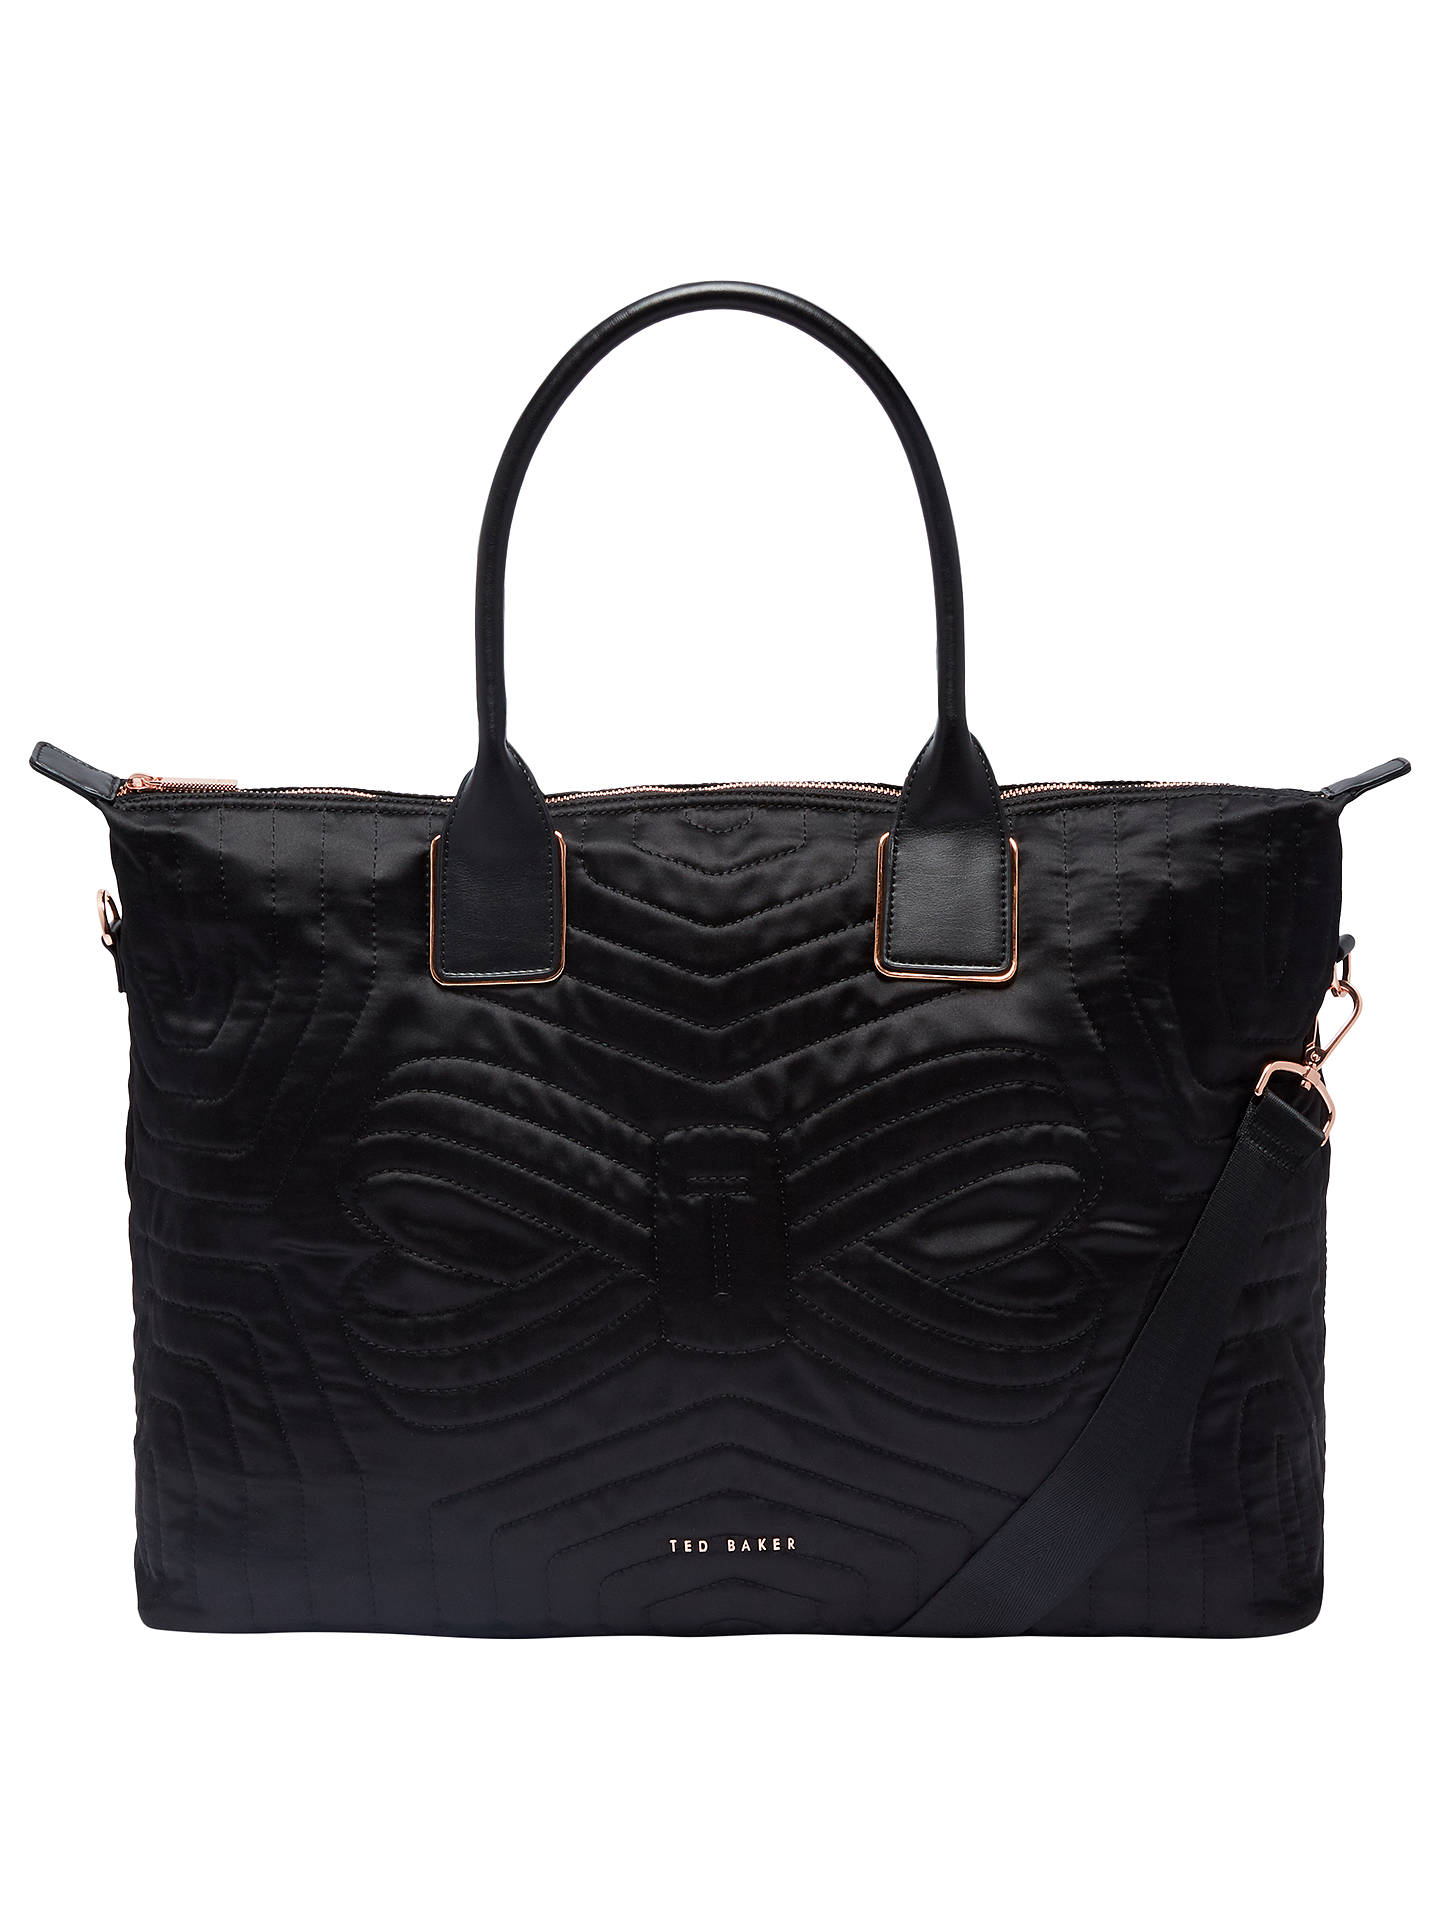 901269f2946b Ted Baker Fit to a T Agaria Large Tote Bag at John Lewis   Partners